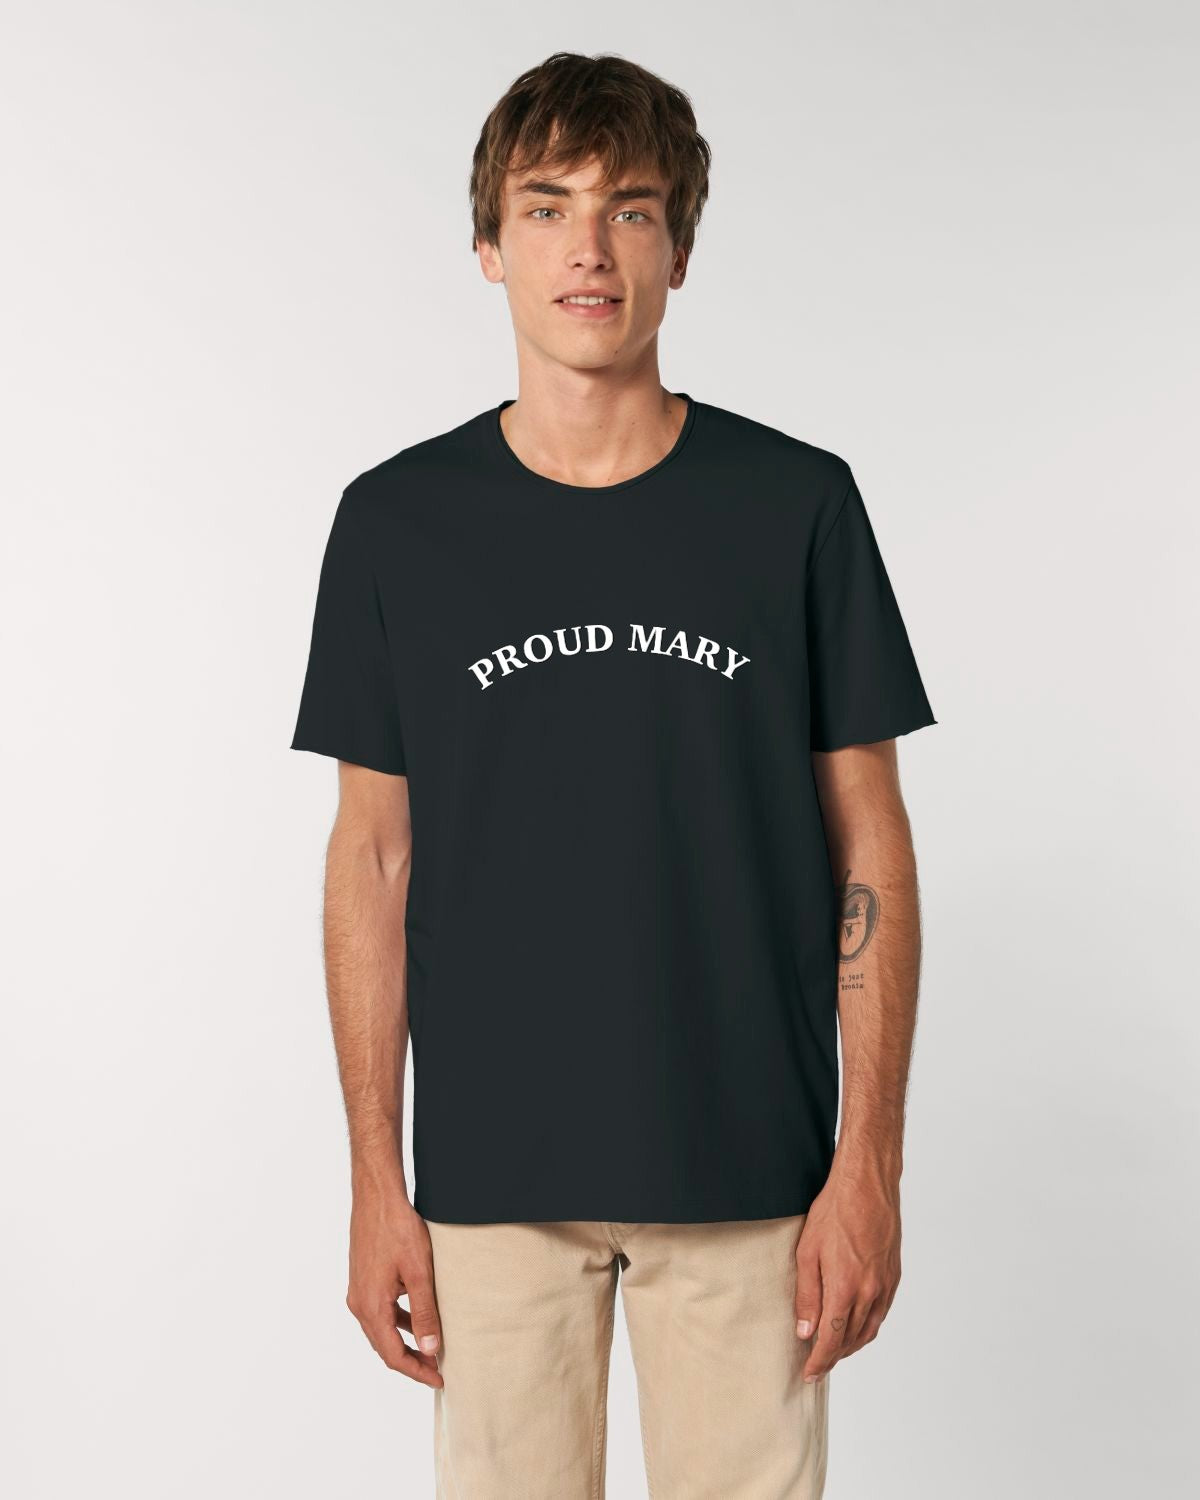 'PROUD MARY' EMBROIDERED MEN'S MEDIUM FIT RAW EDGE ORGANIC T-SHIRT